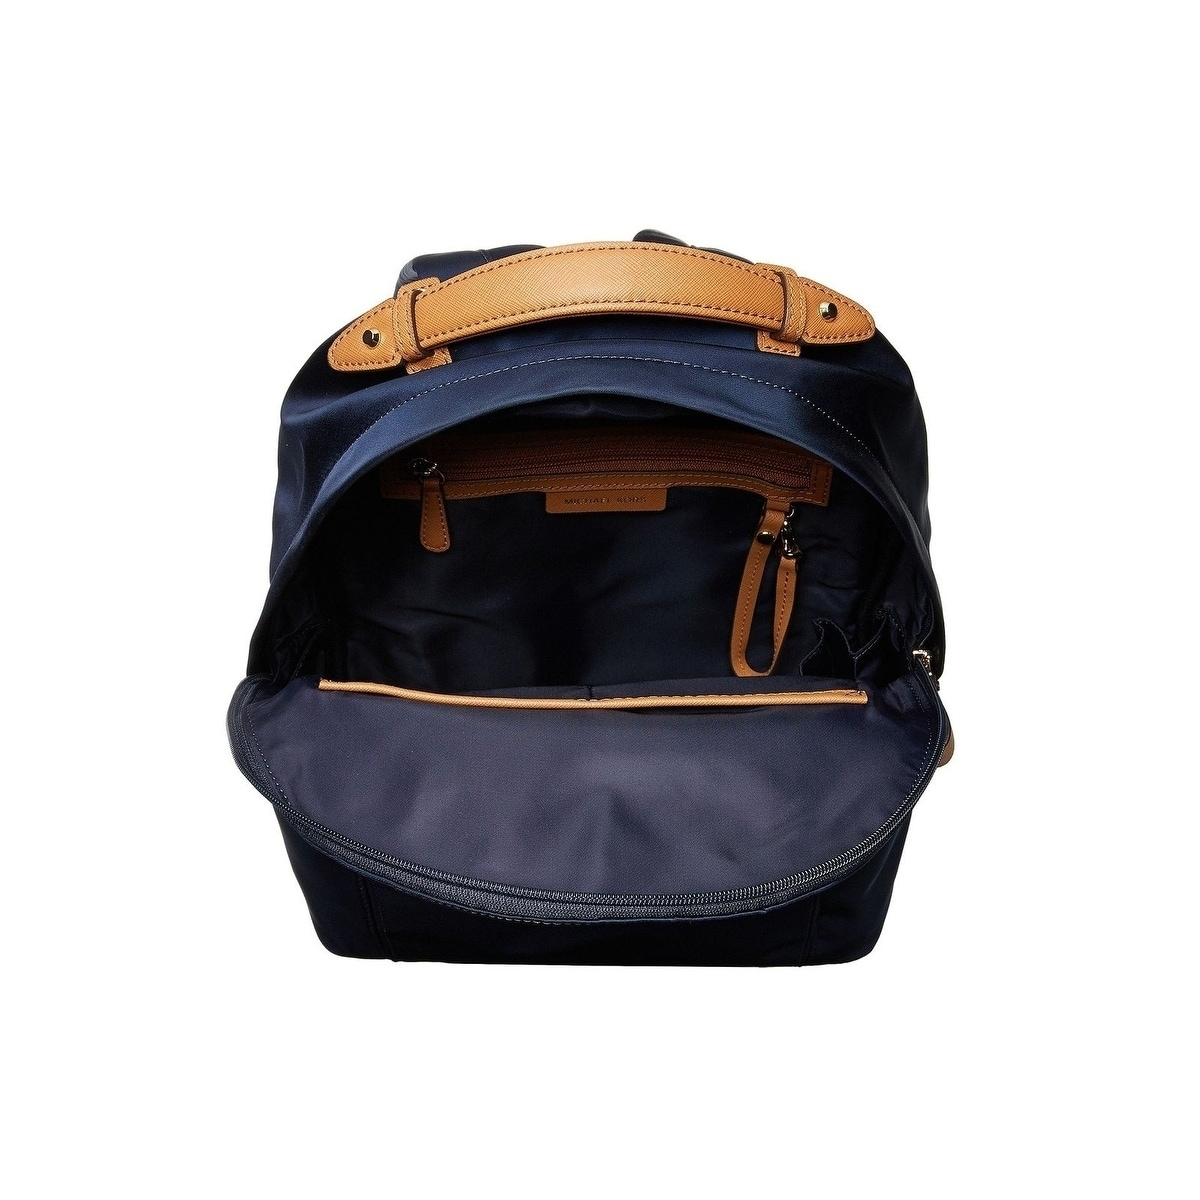 2880c3d93ec8 Shop Michael Kors Kelsey Large Backpack Admiral - Free Shipping Today -  Overstock - 24031607